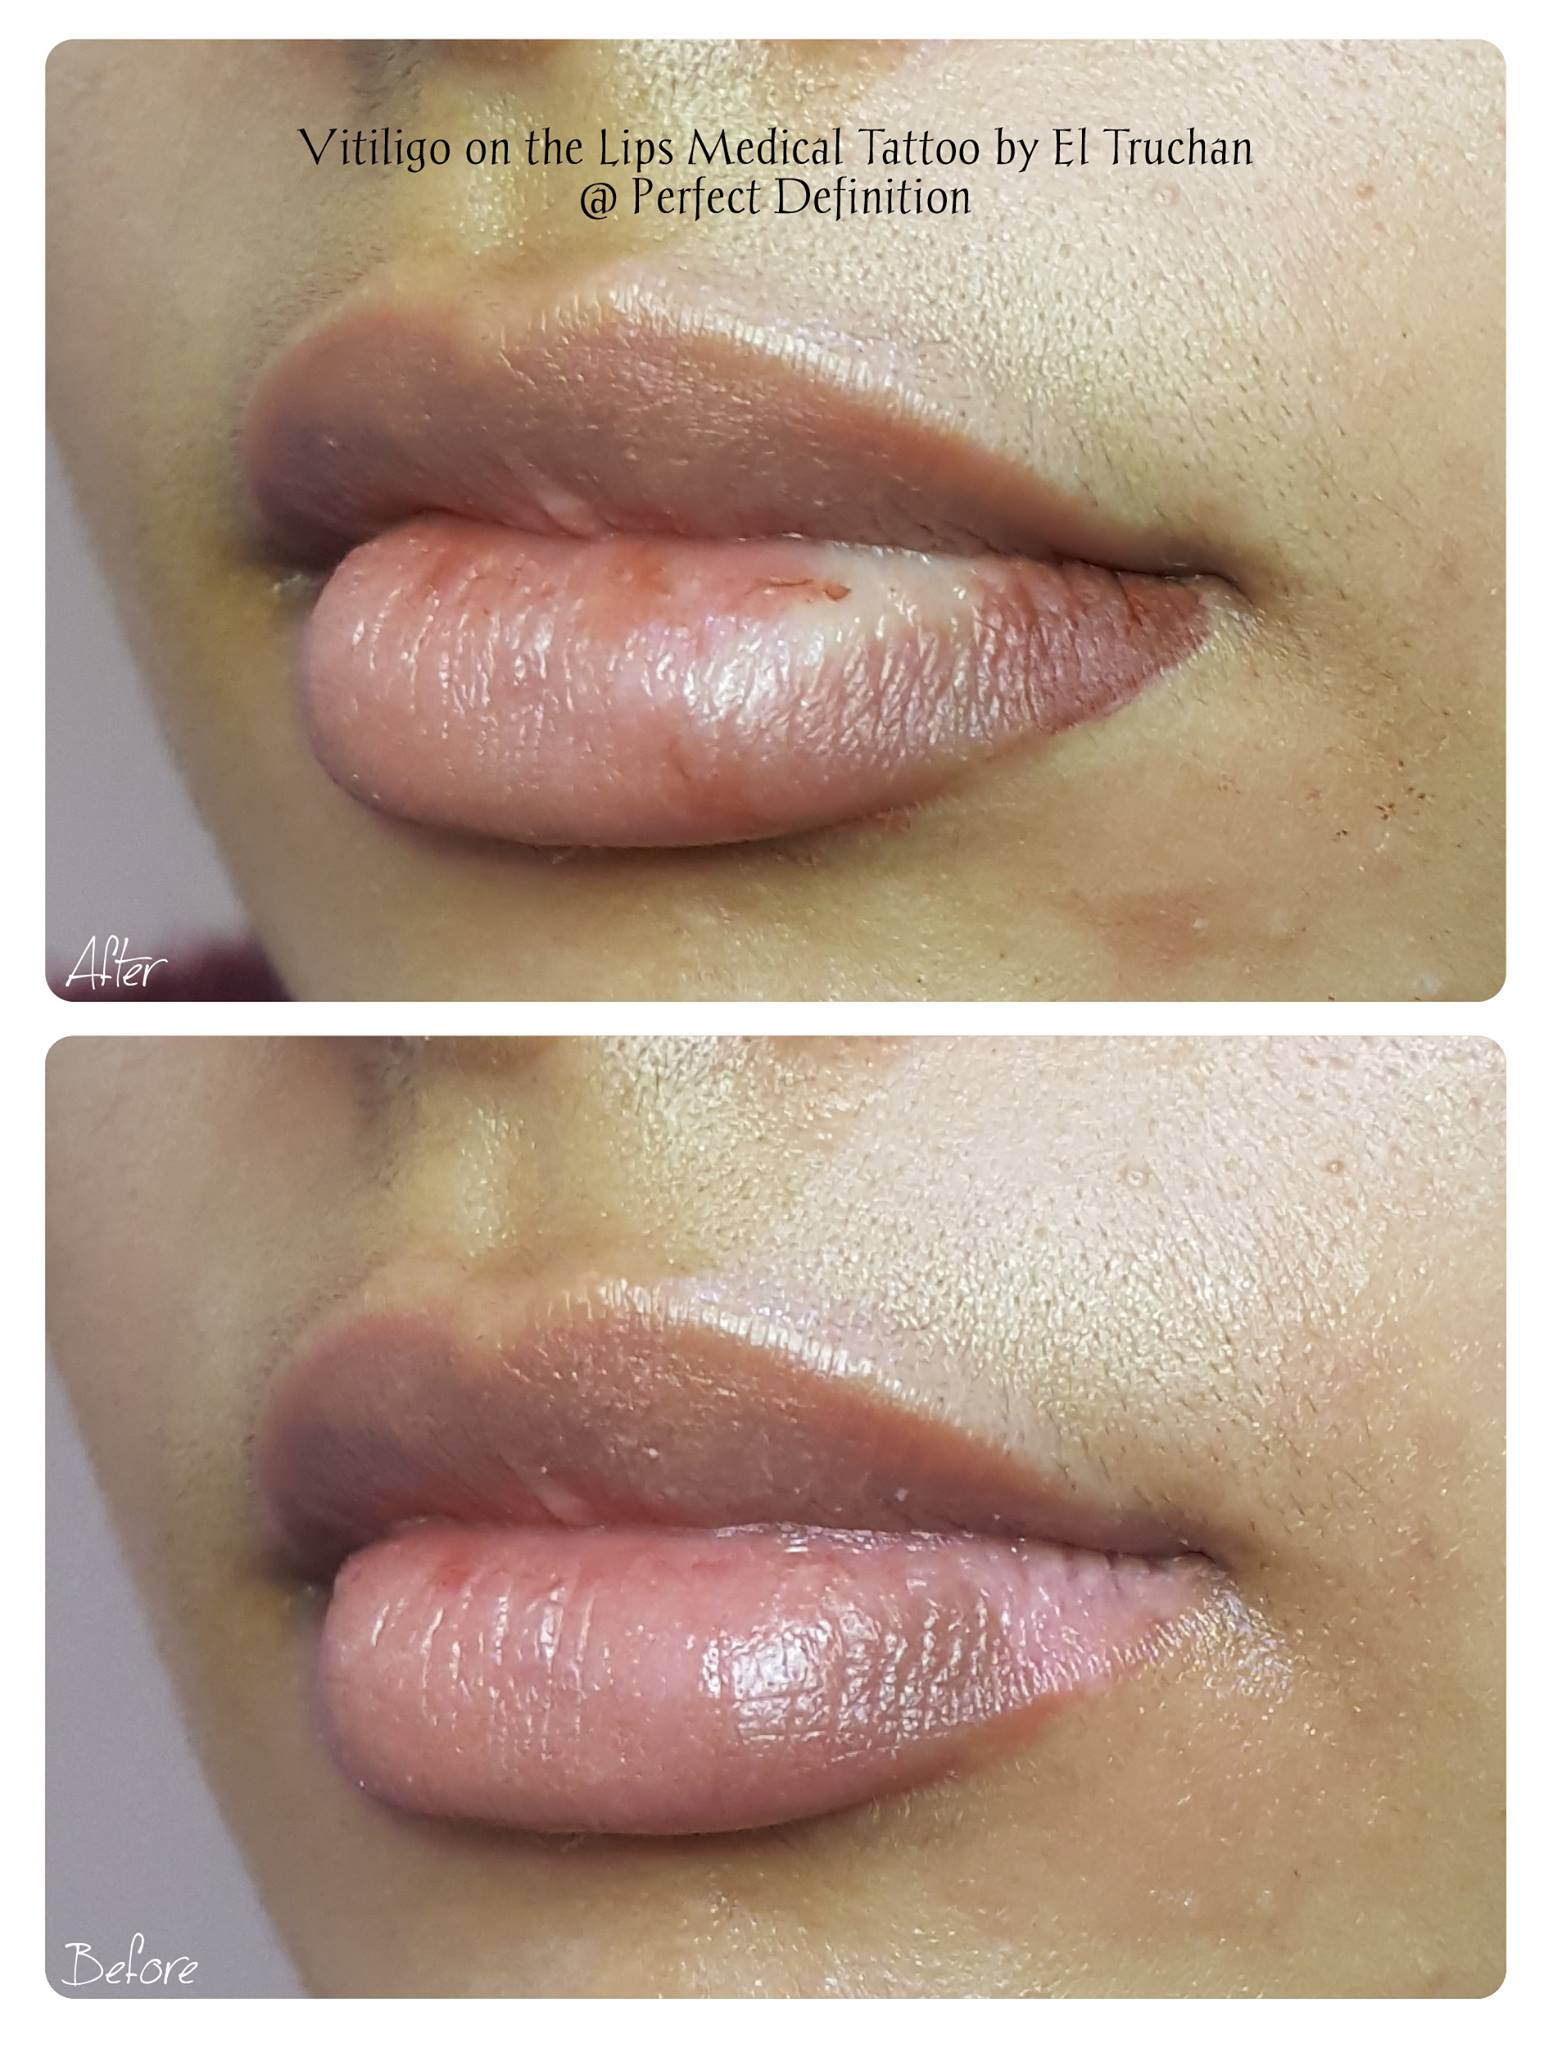 Vitiligo on lips Medical Tattoo